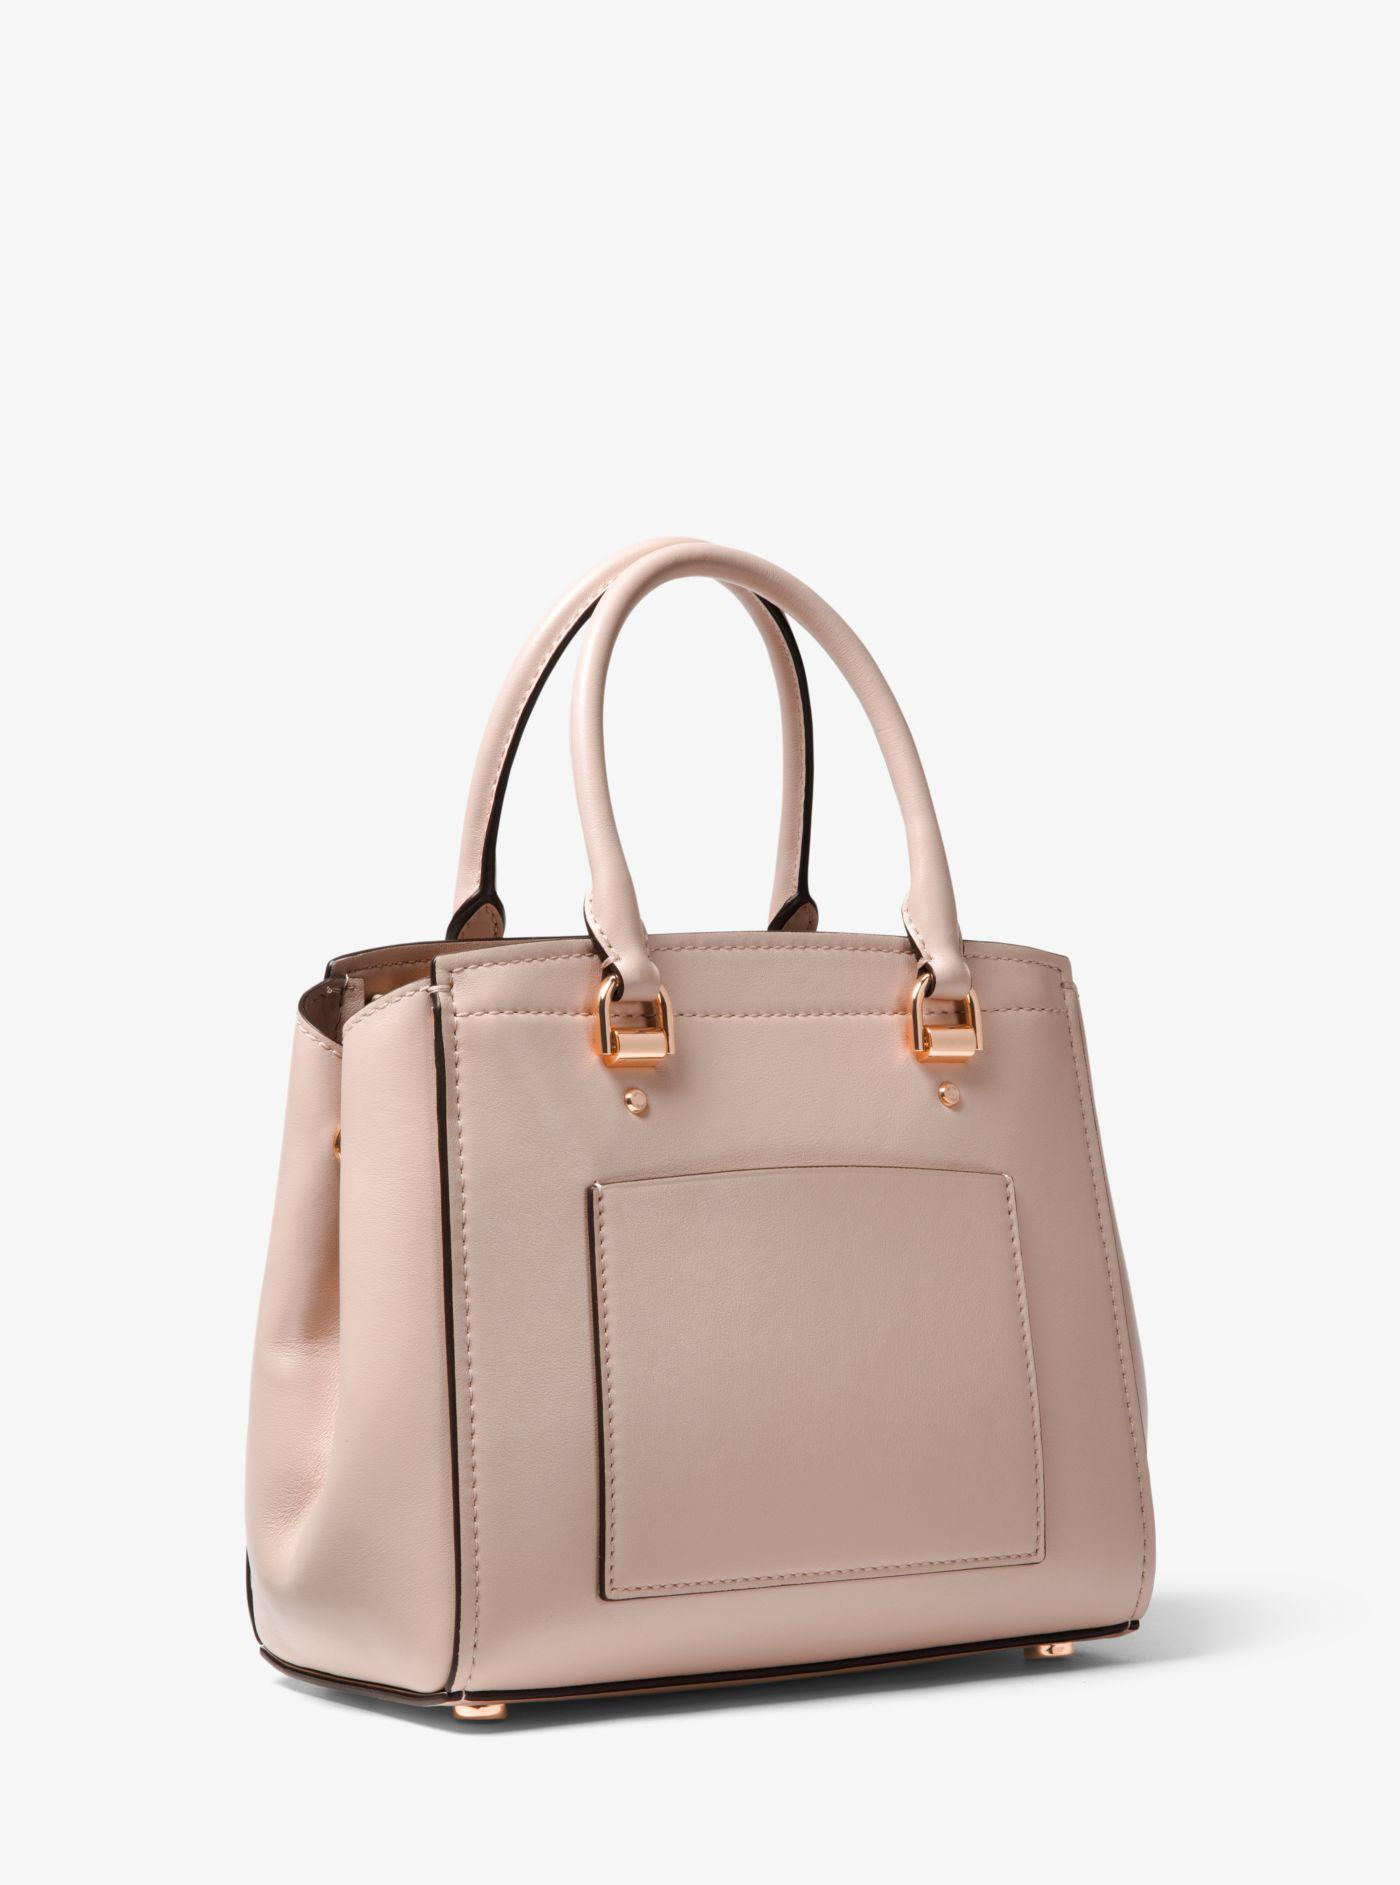 46d142f2939e Michael Kors Benning Medium Perforated Leather Satchel in Pink - Lyst